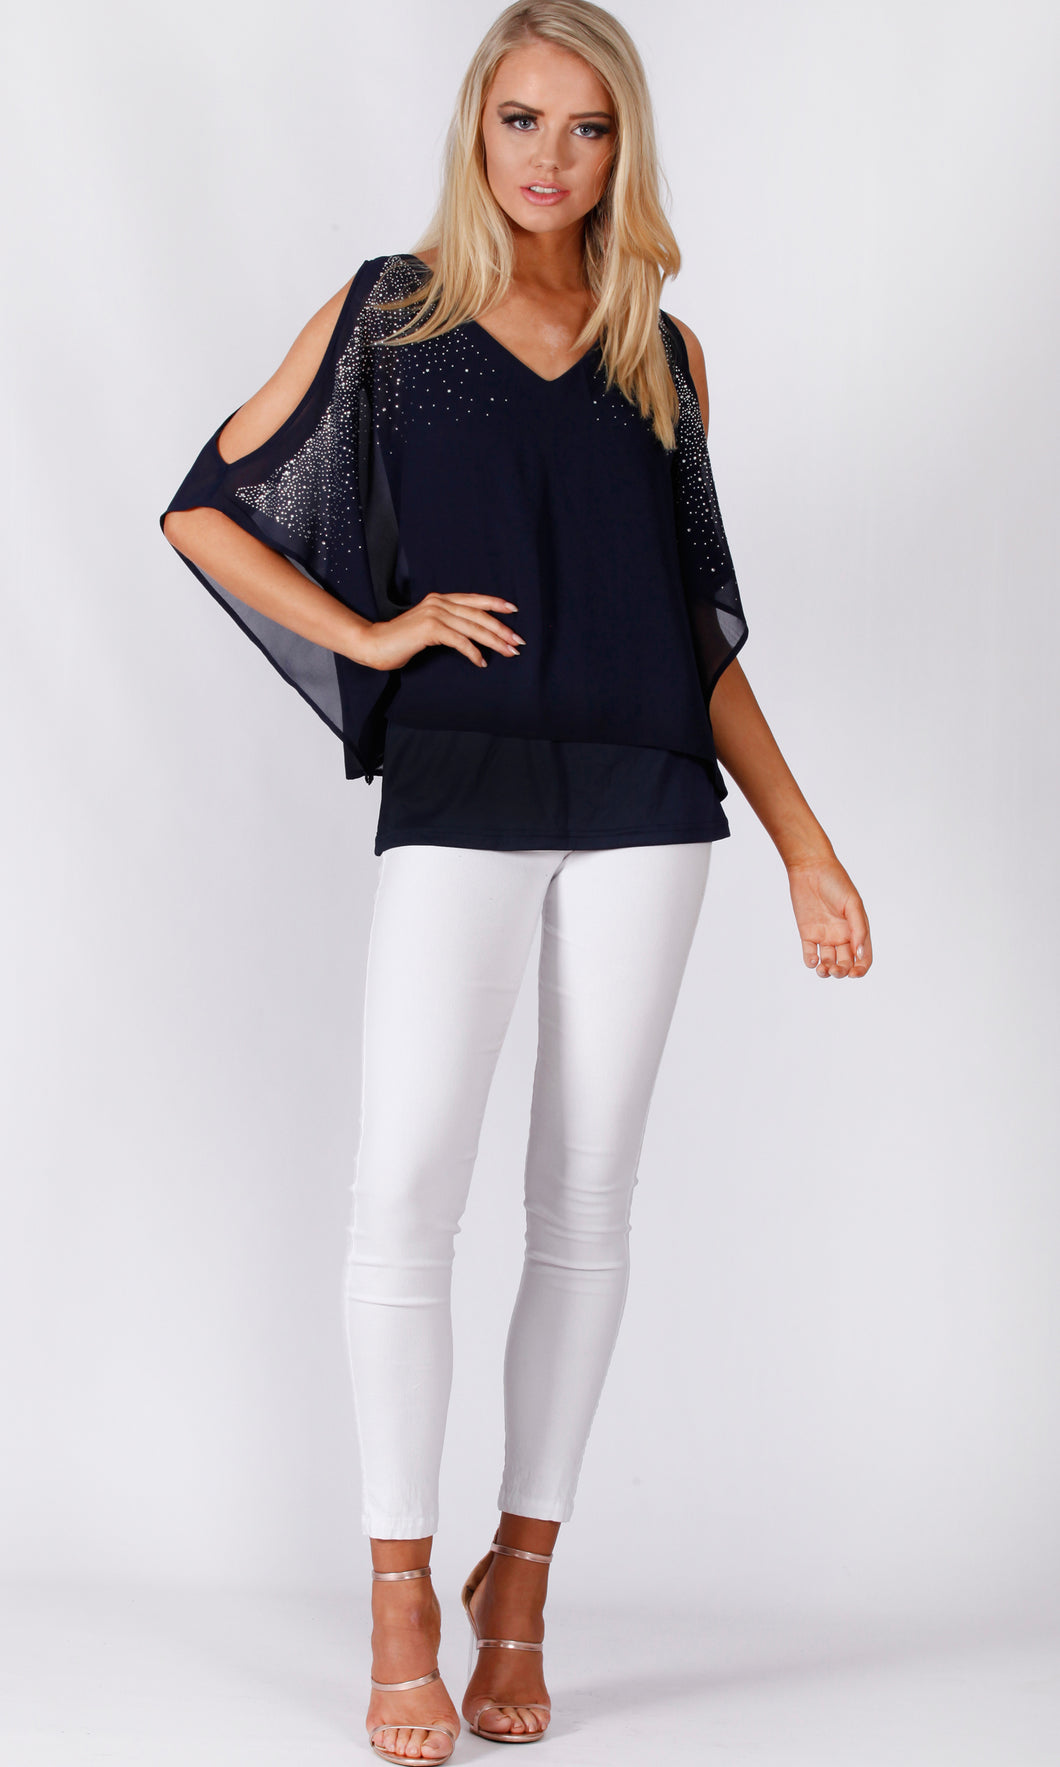 VS7316TB Diamonte Bat Chiffon Layer Top (Pack)